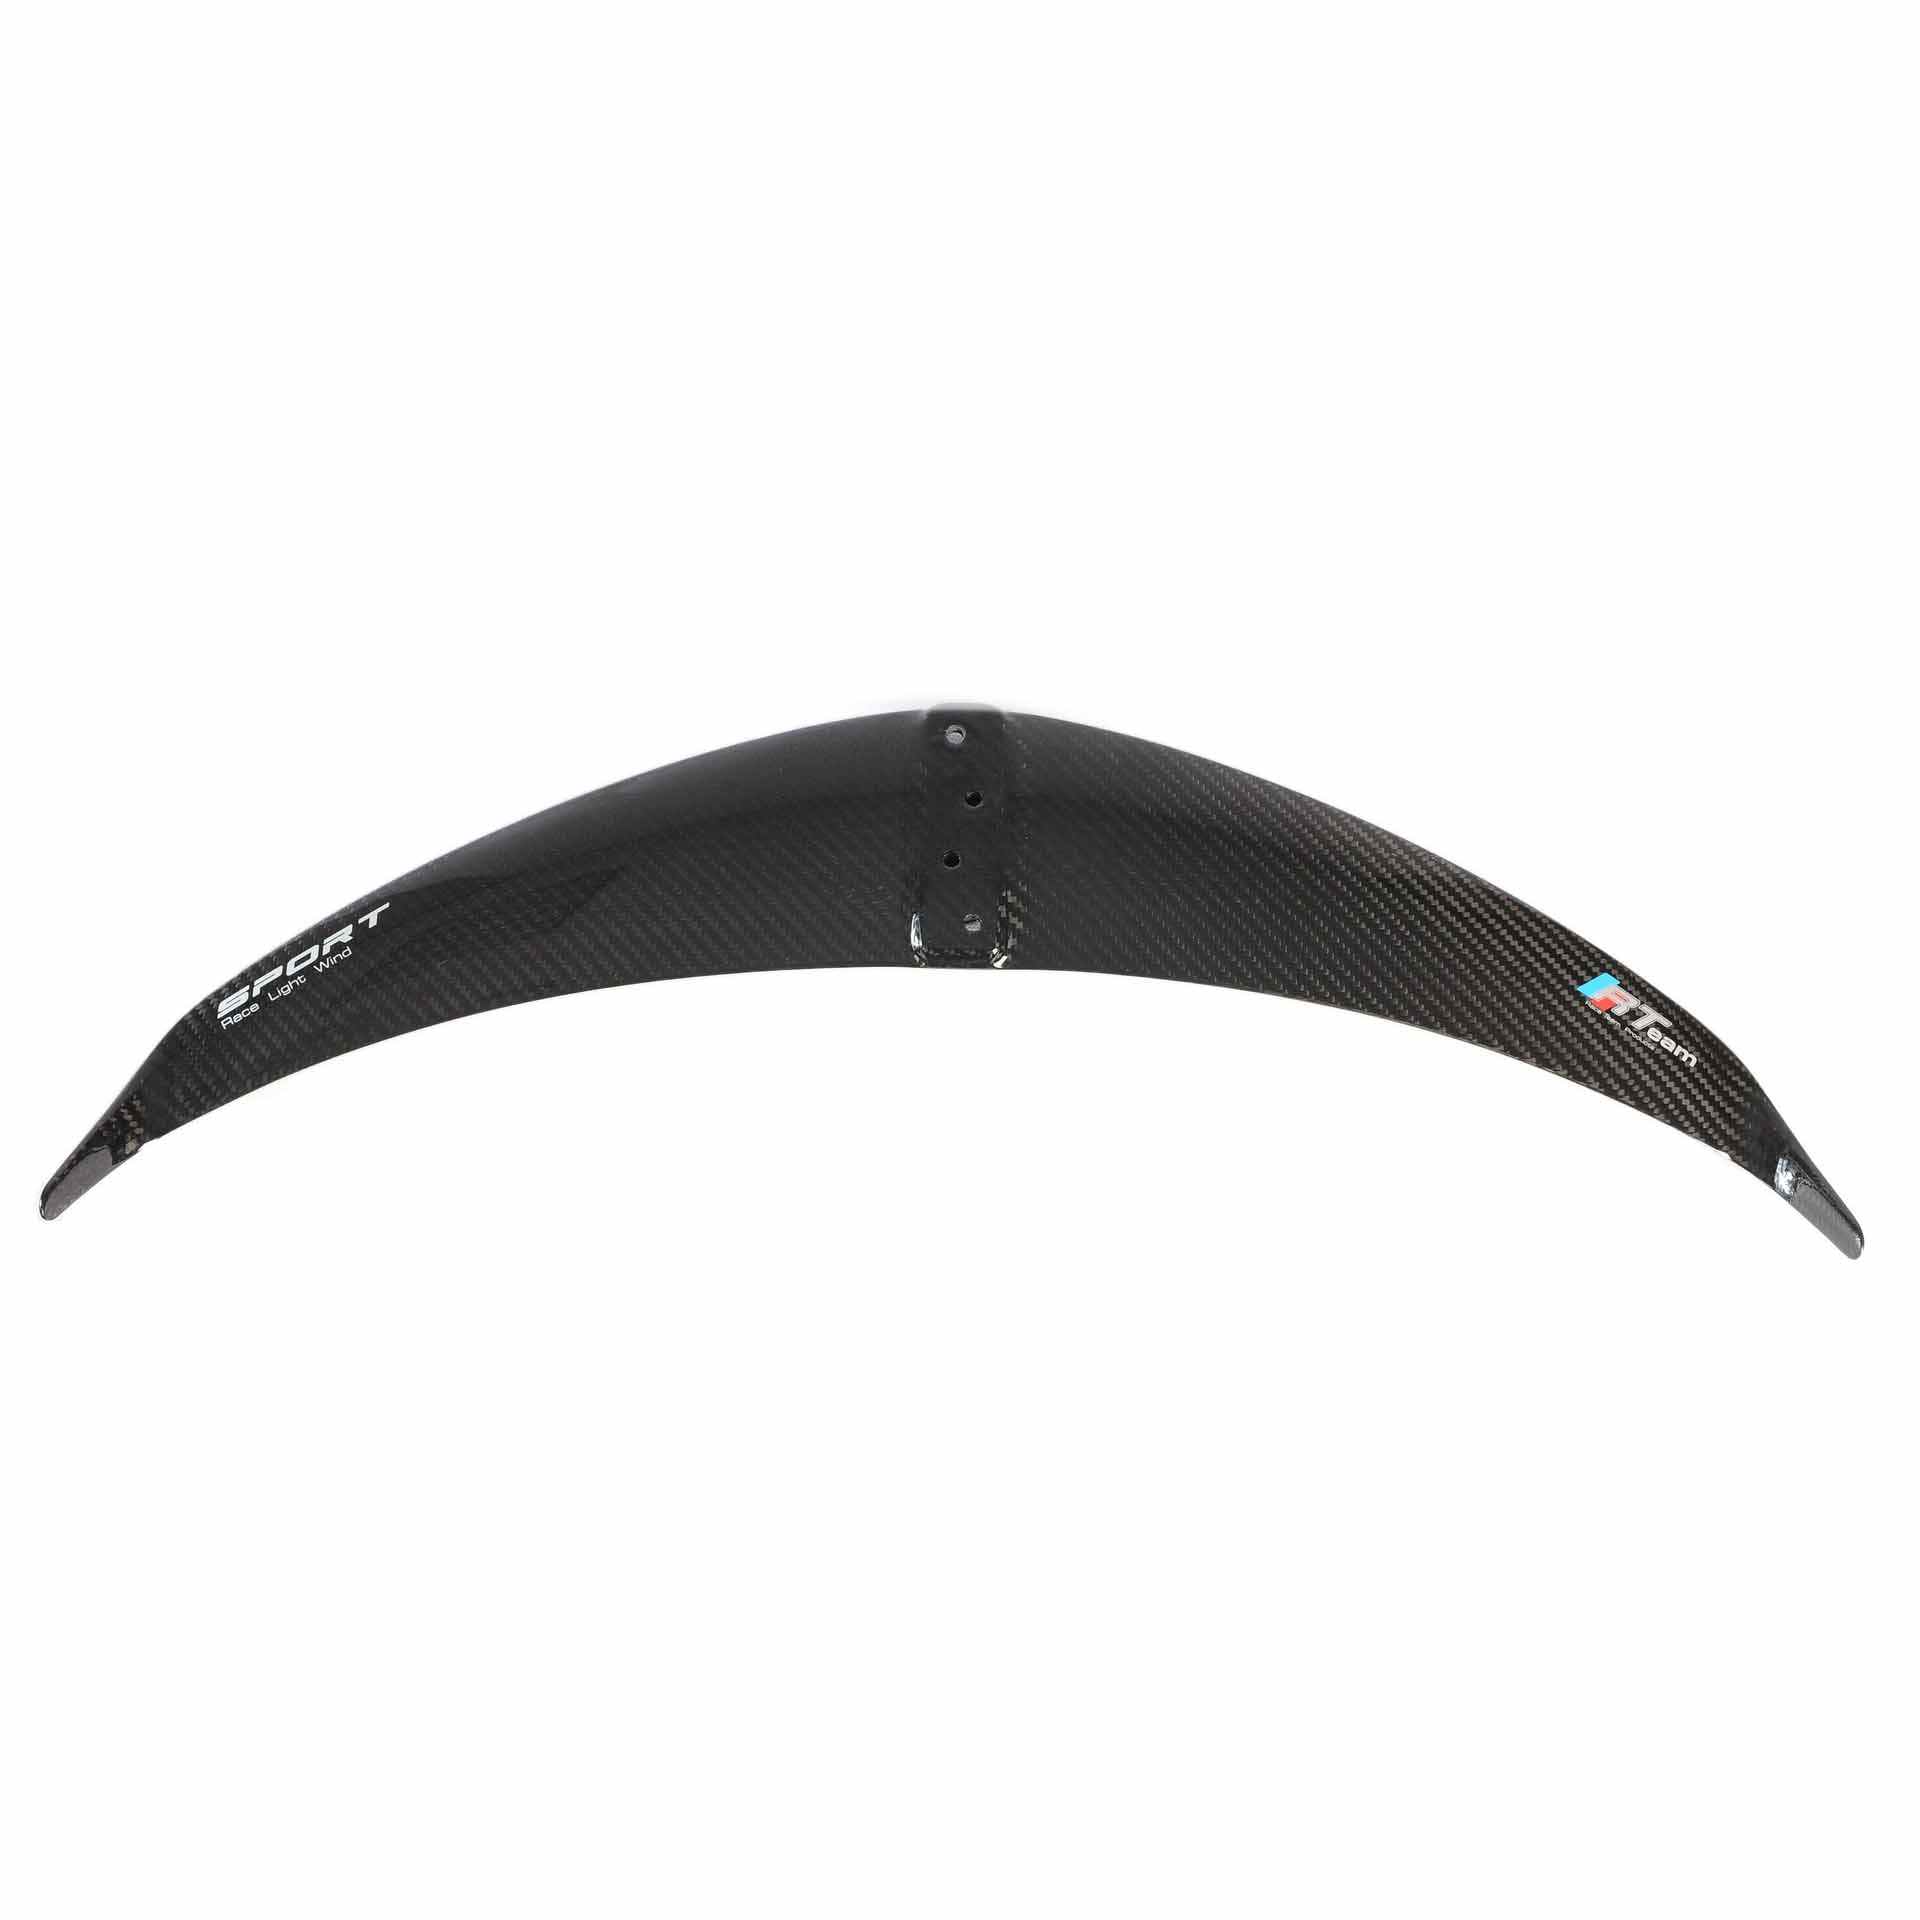 Aile kitefoil sport wing full carbon gloss